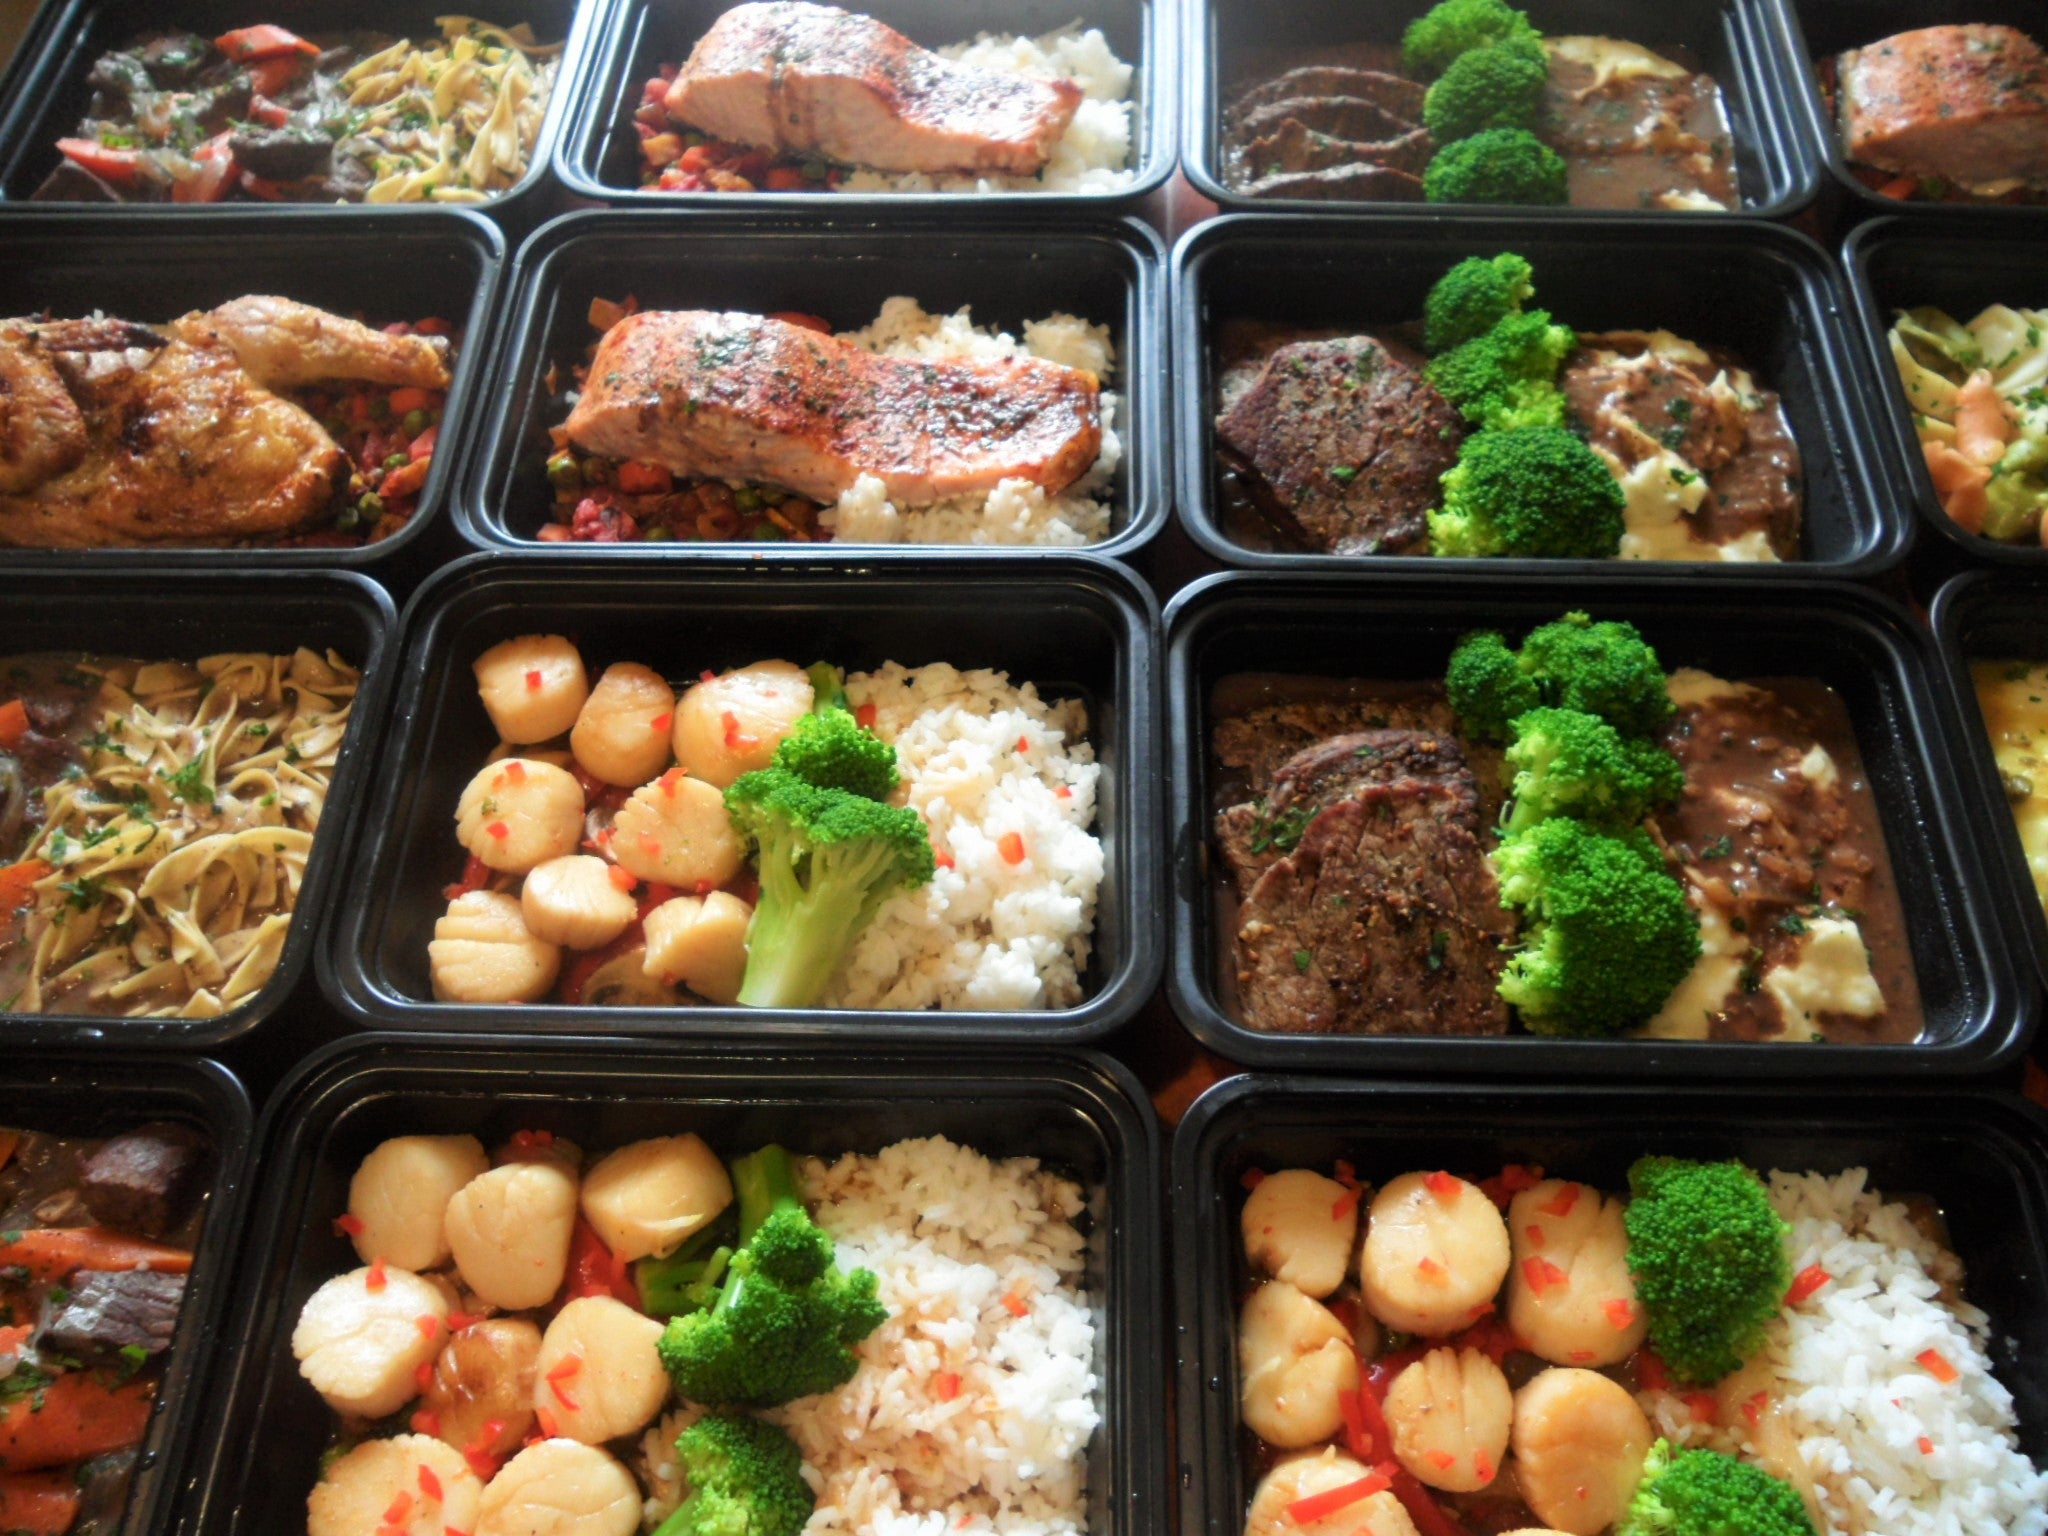 Healthy meals delivered to home in Maryland